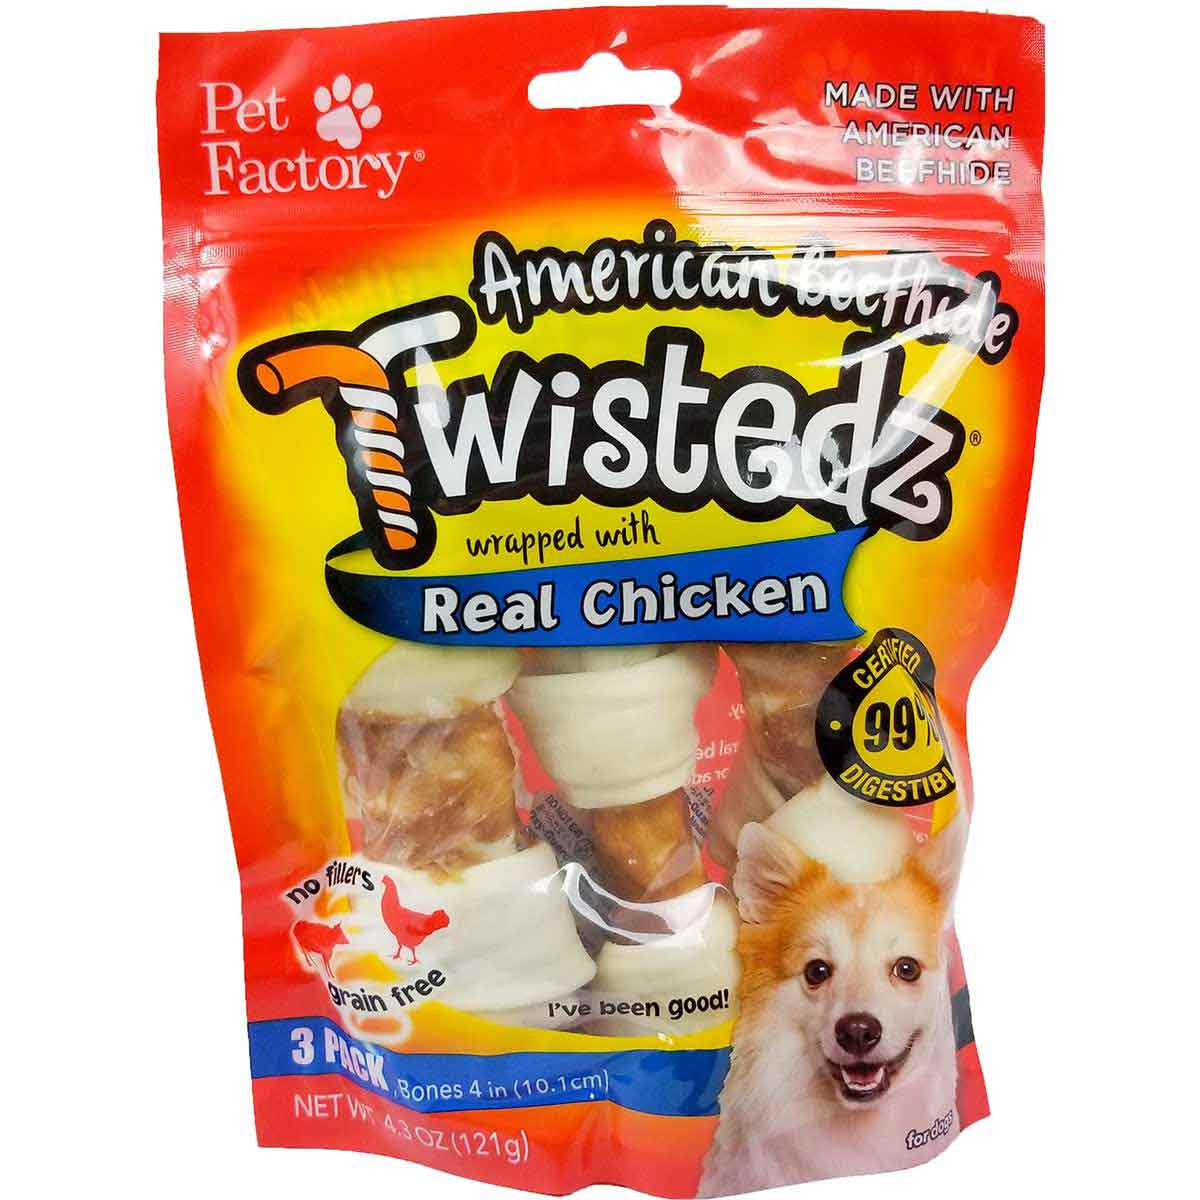 Pet Factory Twistedz Chicken Wrapped 4-5 inch Bones 3 Pack